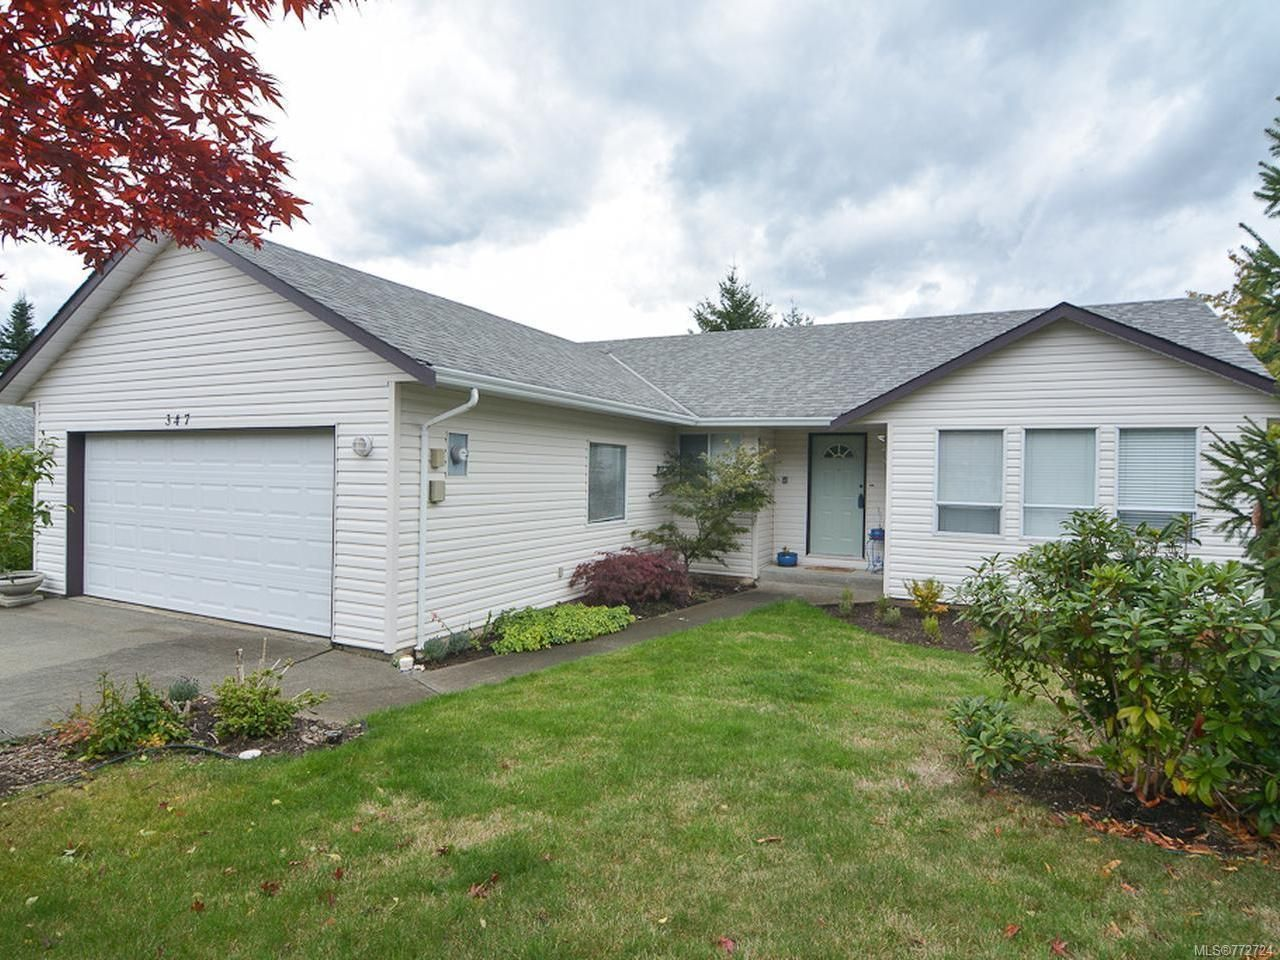 Main Photo: 347 TORRENCE ROAD in COMOX: CV Comox (Town of) House for sale (Comox Valley)  : MLS®# 772724